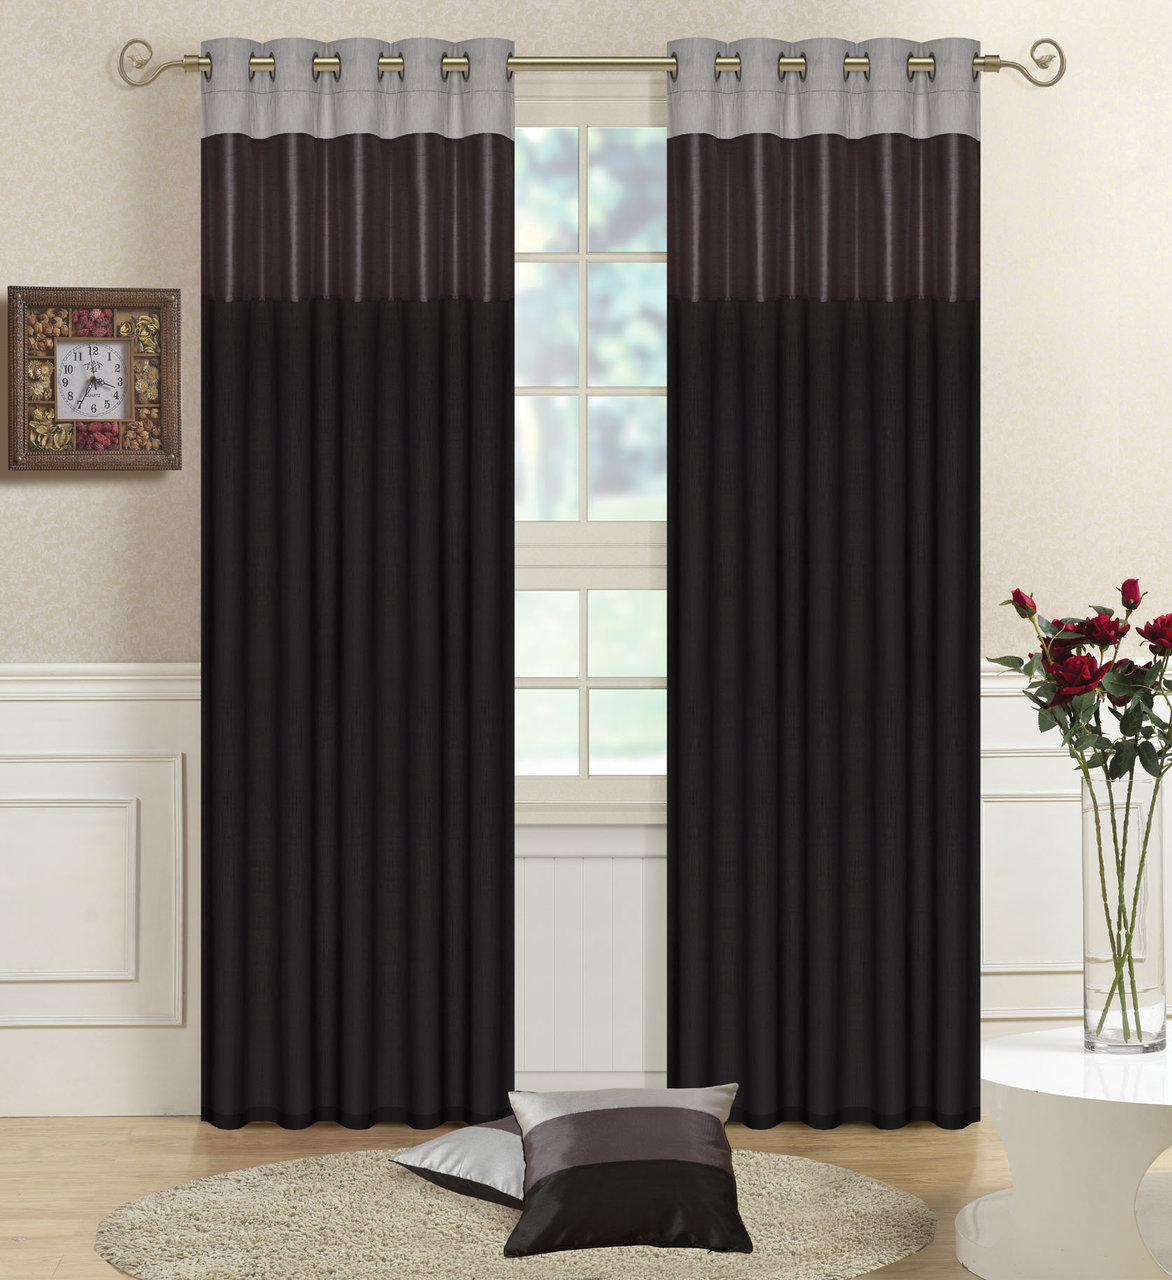 Black GreySilver Faux Silk THREE TONE Fully Lined CURTAINS